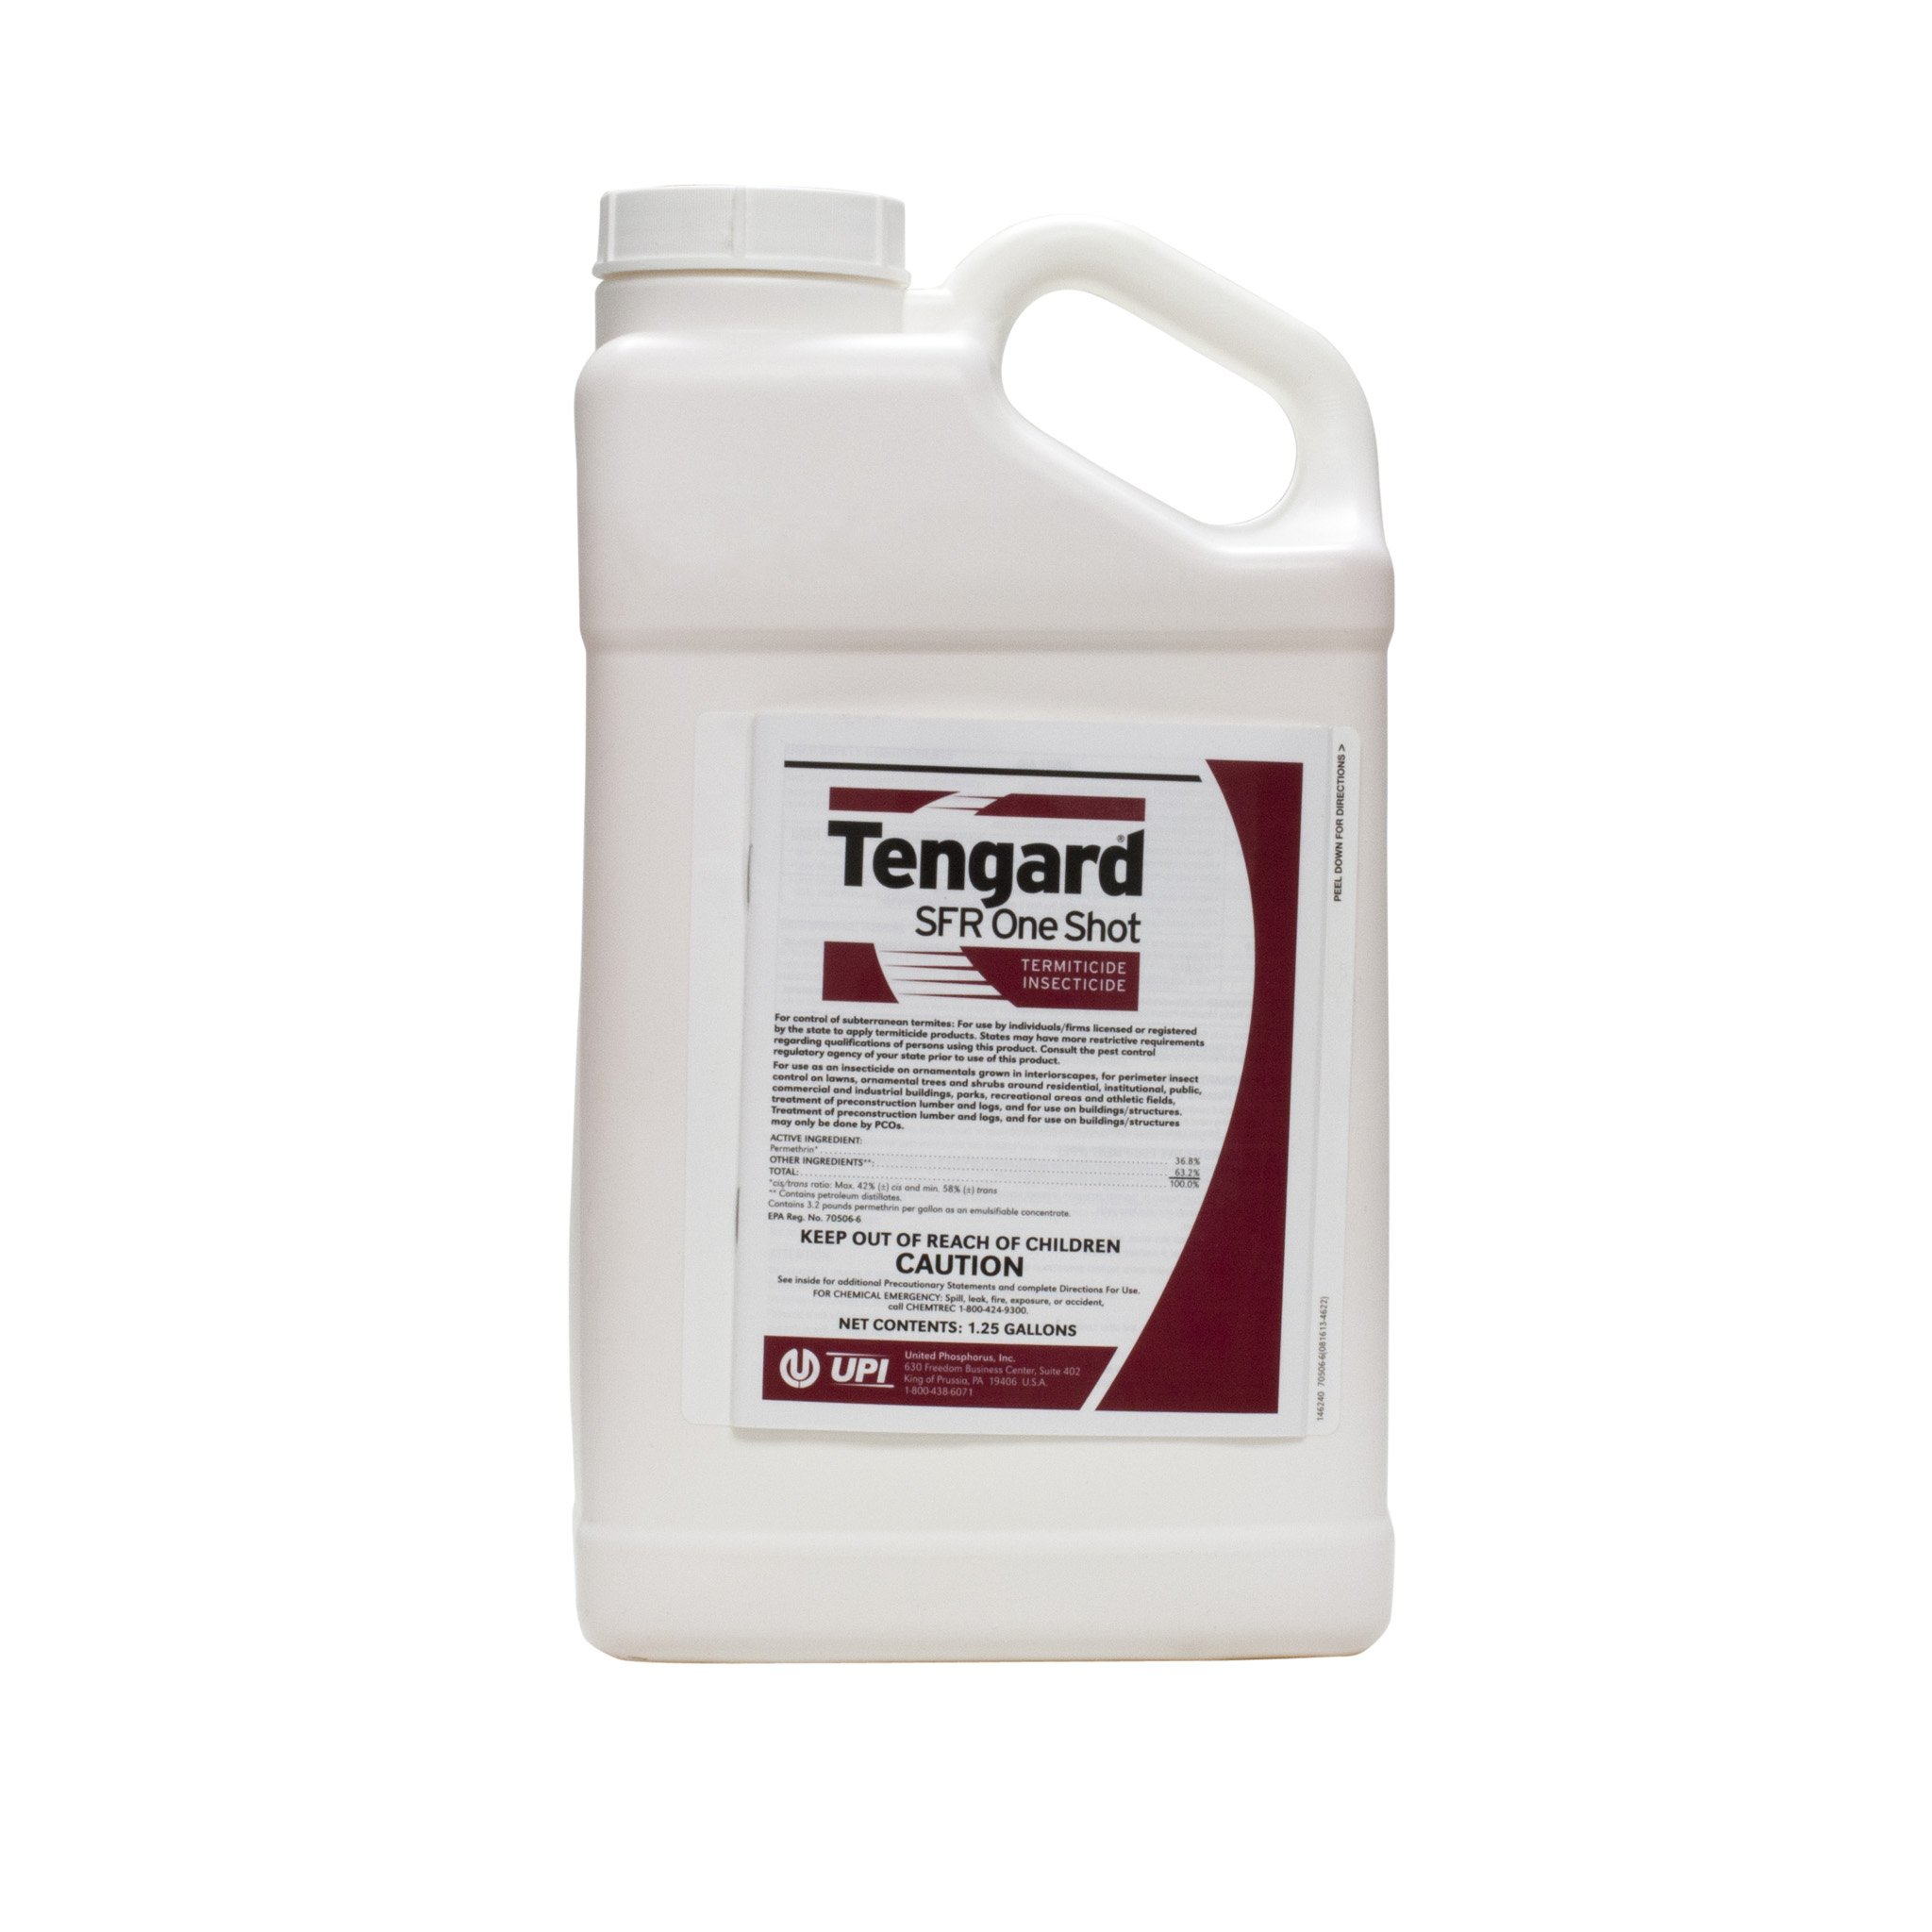 Tengard SFR 36.8 % Permethrin Insecticide / Termiticide 1.25 Gallon ~~ Kill Termites Fleas Ticks Roaches Ants Mole Crickets Ching Bugs and Many More Pests Used By Many Pros!! by United Abrasives